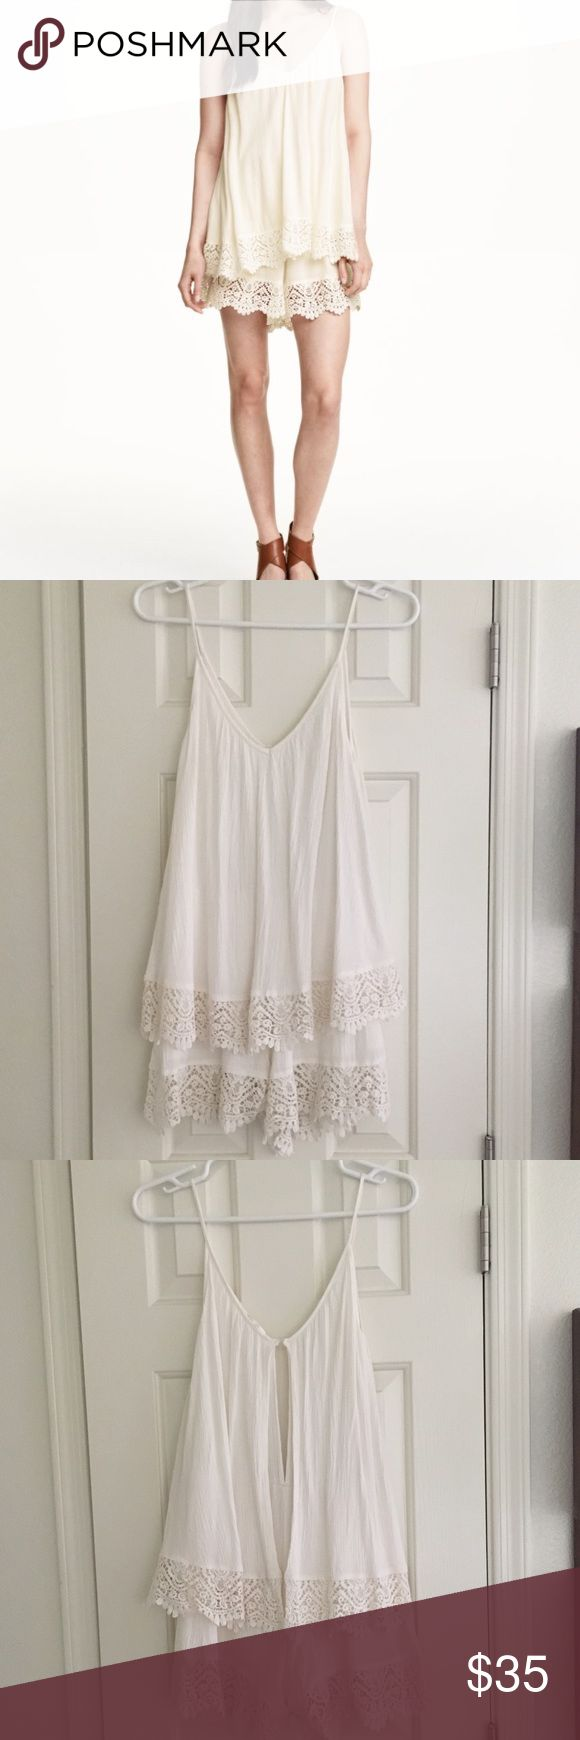 H&M Beige Playsuit in Lace | Cream | 6 This is in perfect condition and comes from a smoke free home! Description: Sleeveless jumpsuit in woven, crêped fabric with lace details. V-neck at front and back, narrow shoulder straps, elasticized seam at waist, and short, wide-cut legs. Opening at back with button at back of neck. Lace trim at hems and at hem of top section. 100% rayon. Color: Natural white H&M Other